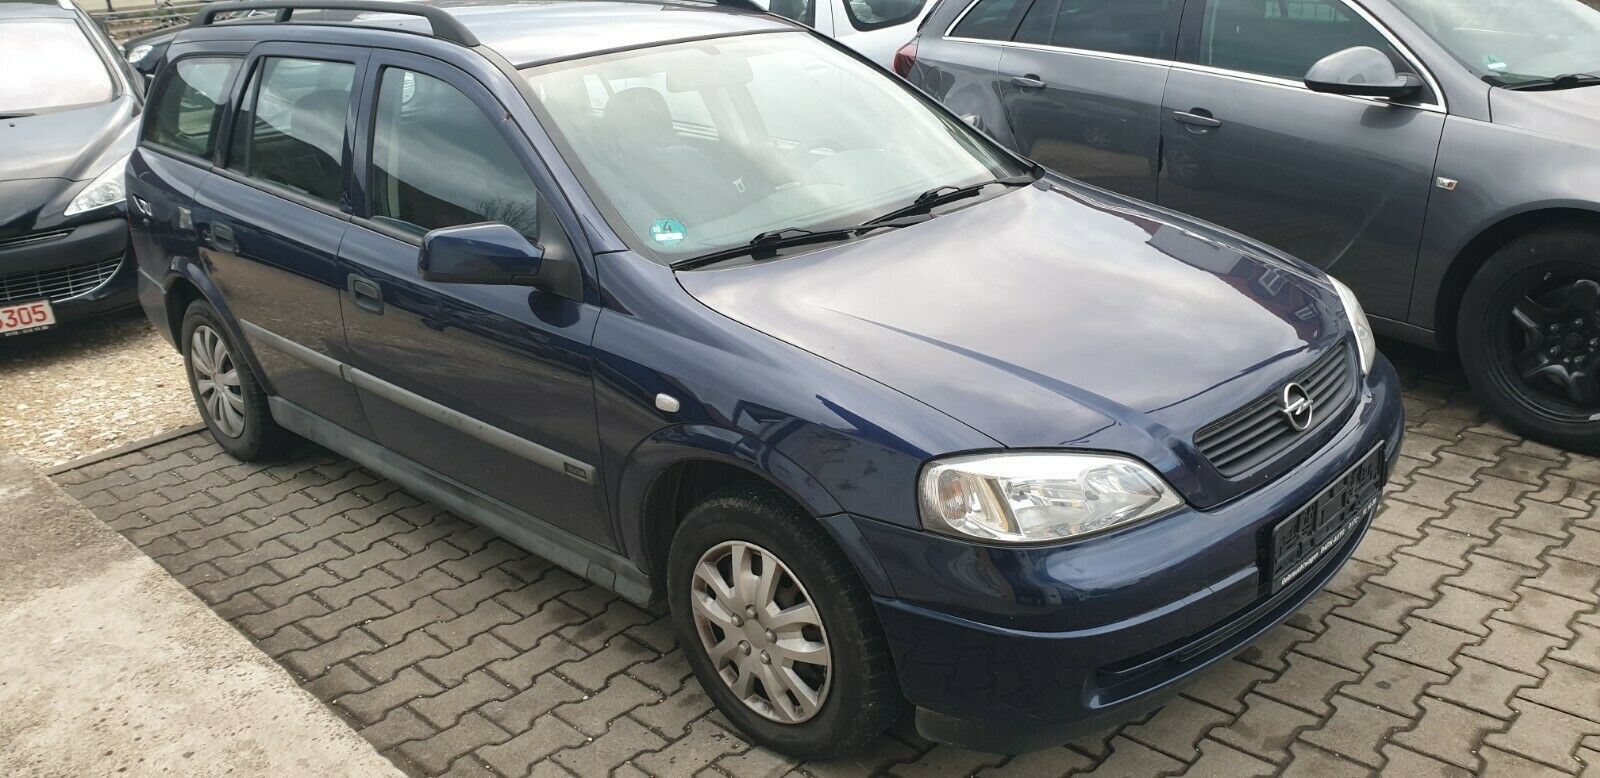 OPEL Astra G 1,6 Ecotec Edition 2000*KEIN_TÜV